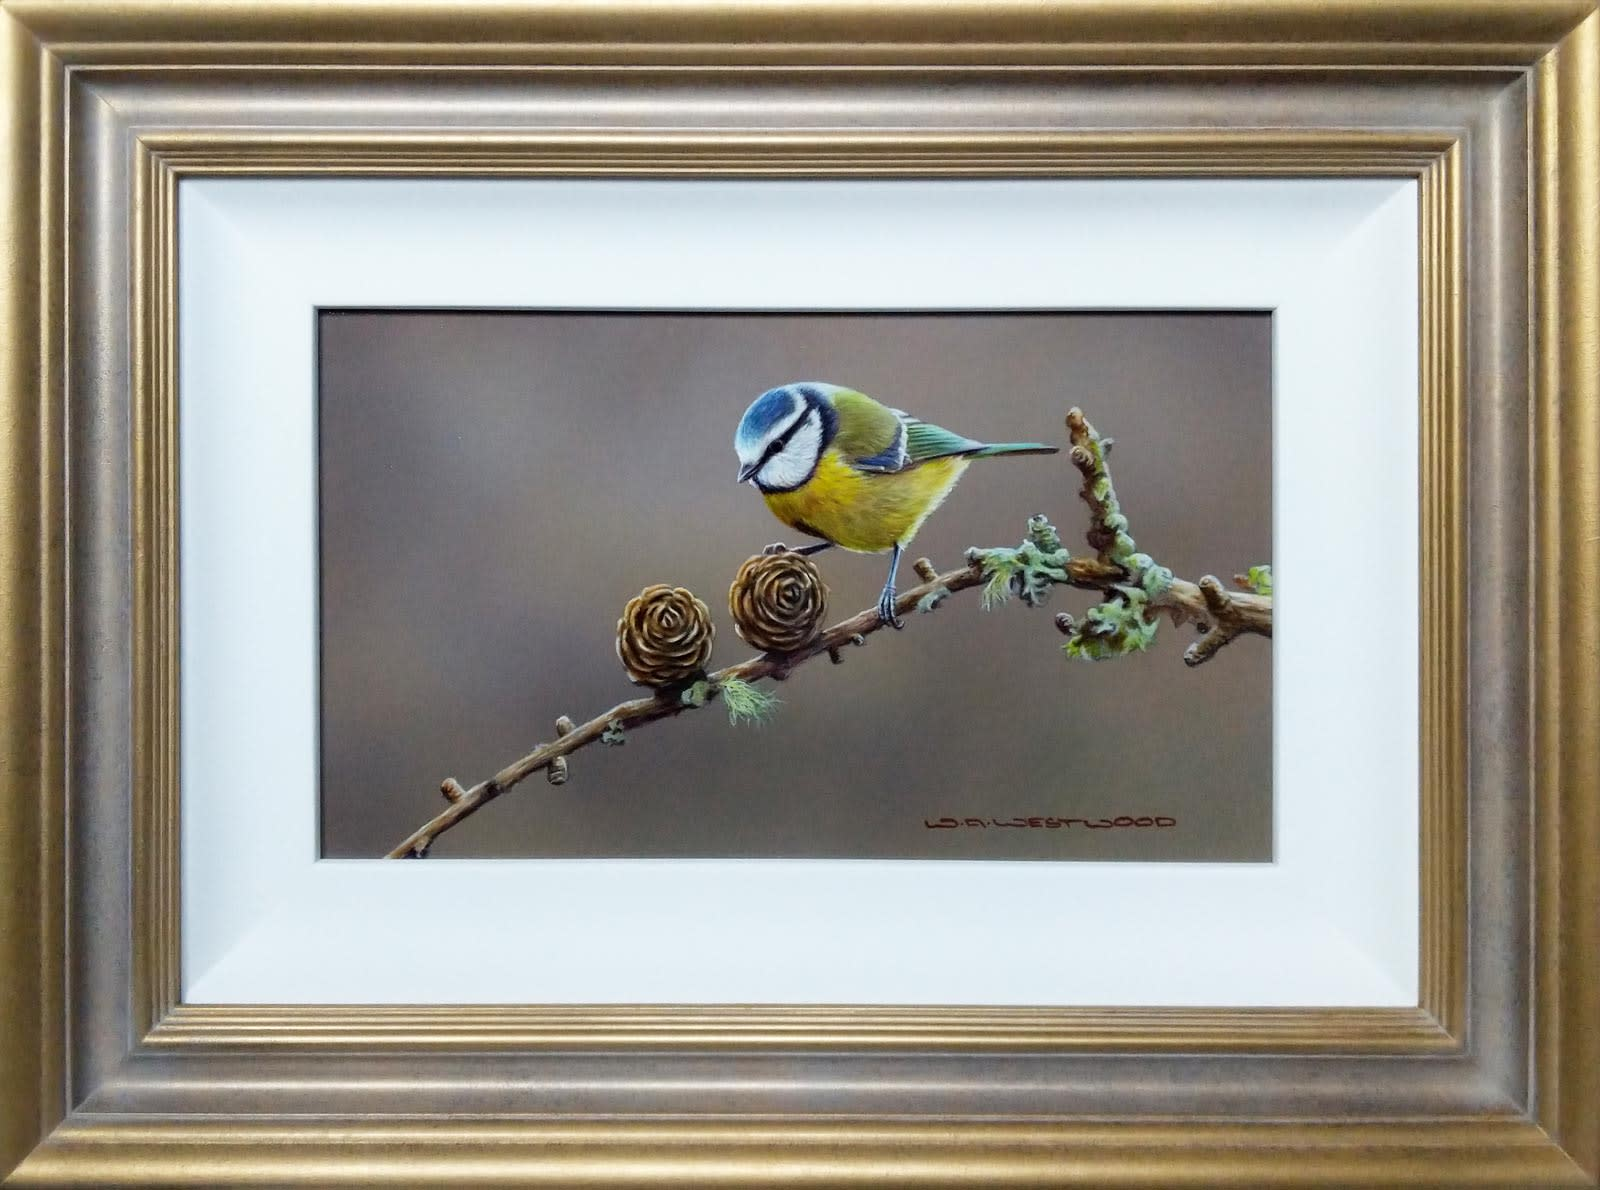 Blue Tit Commission, Wayne Westwood